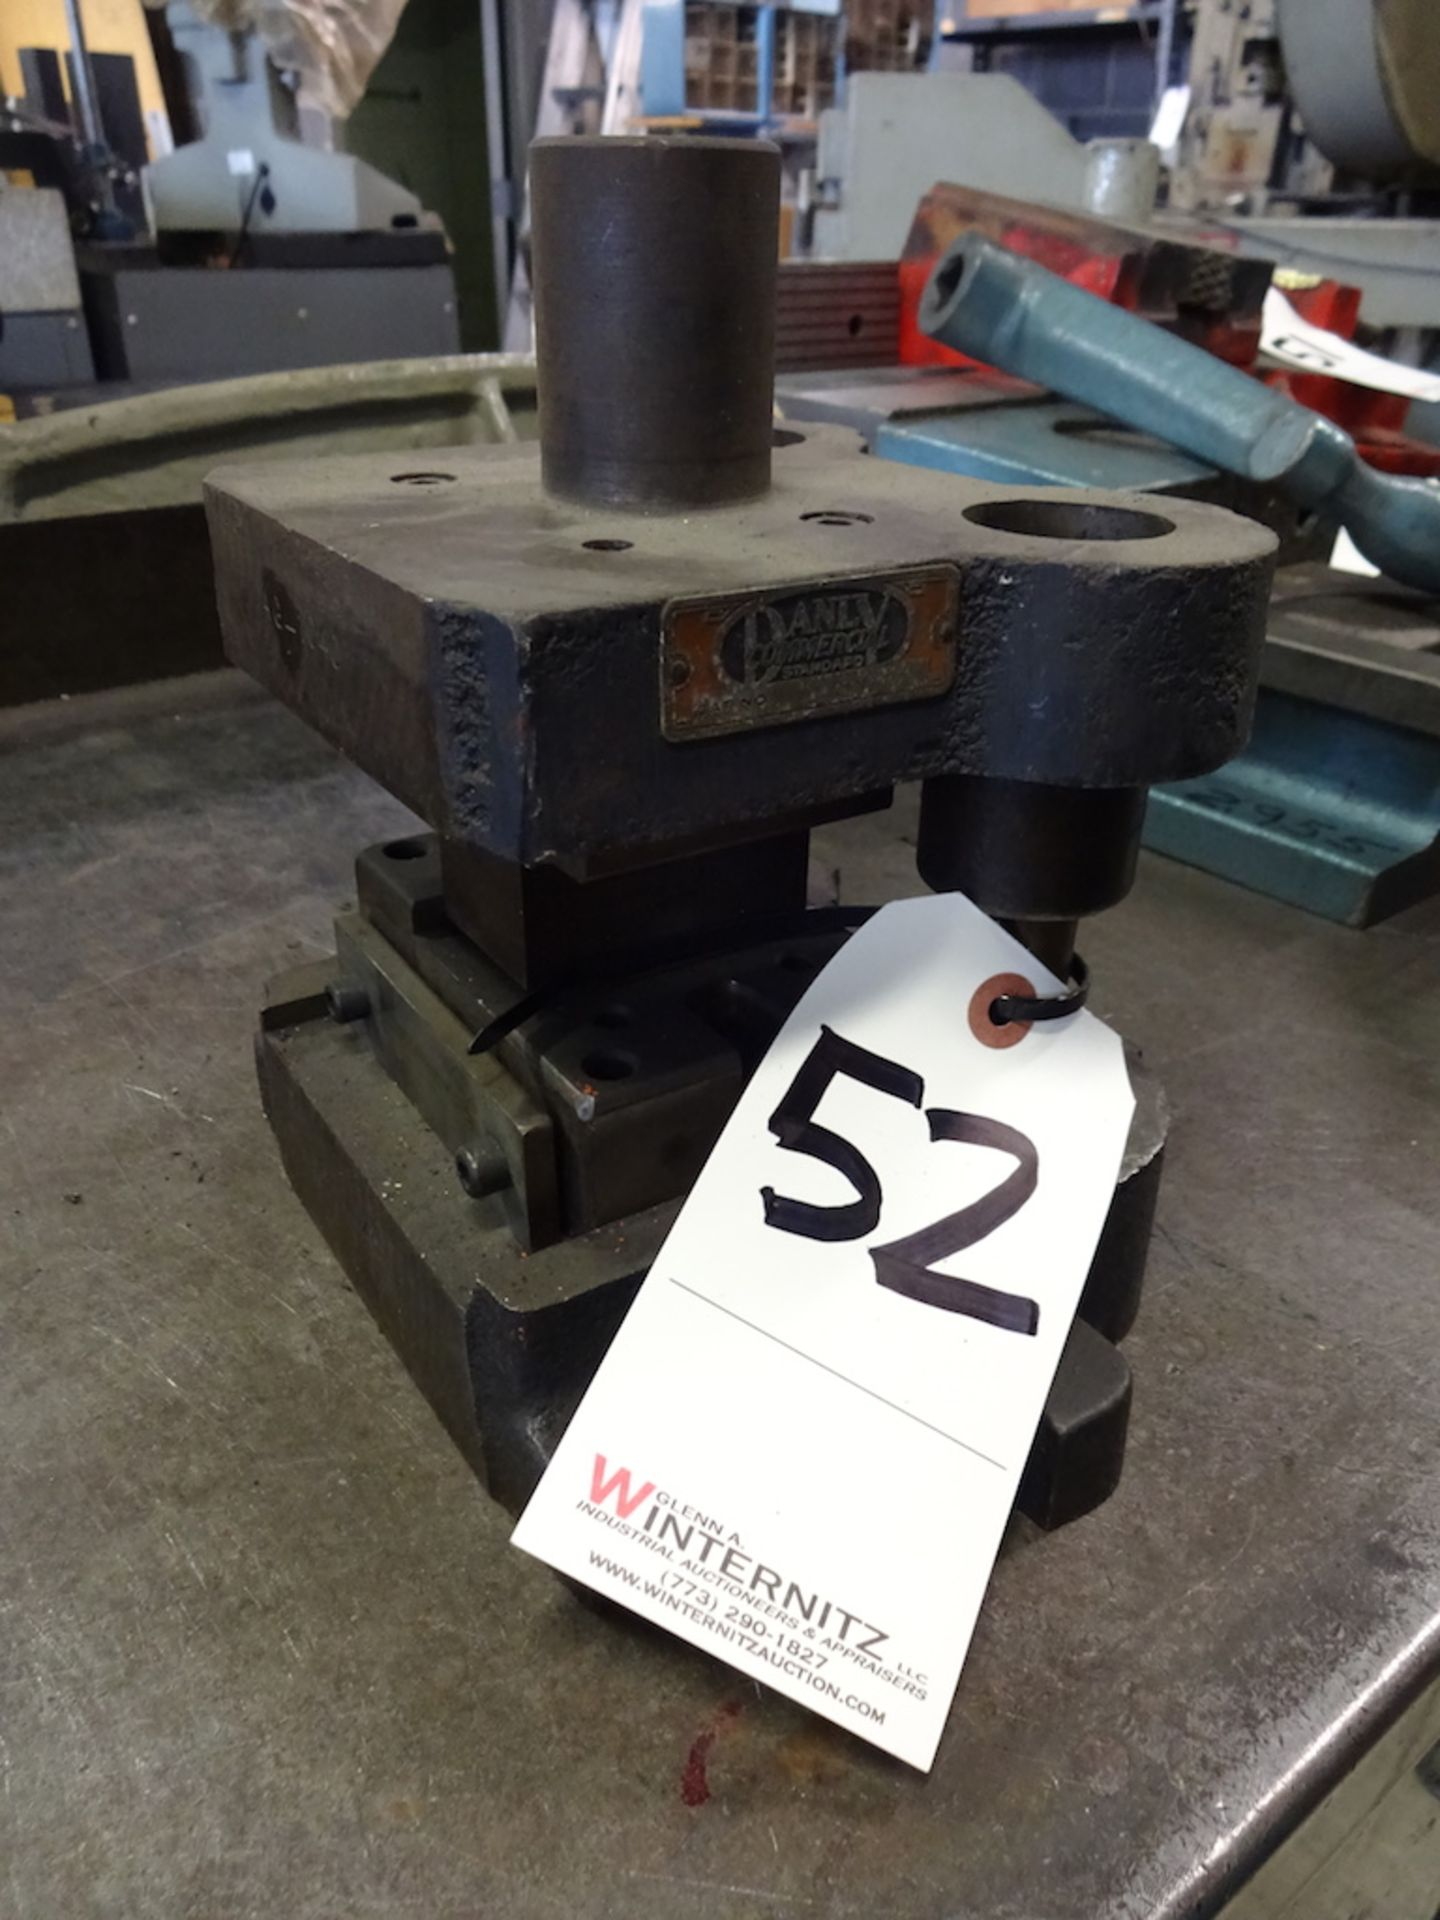 Lot 52 - DANLY COMMERCIAL STANDARD PRESS DIE